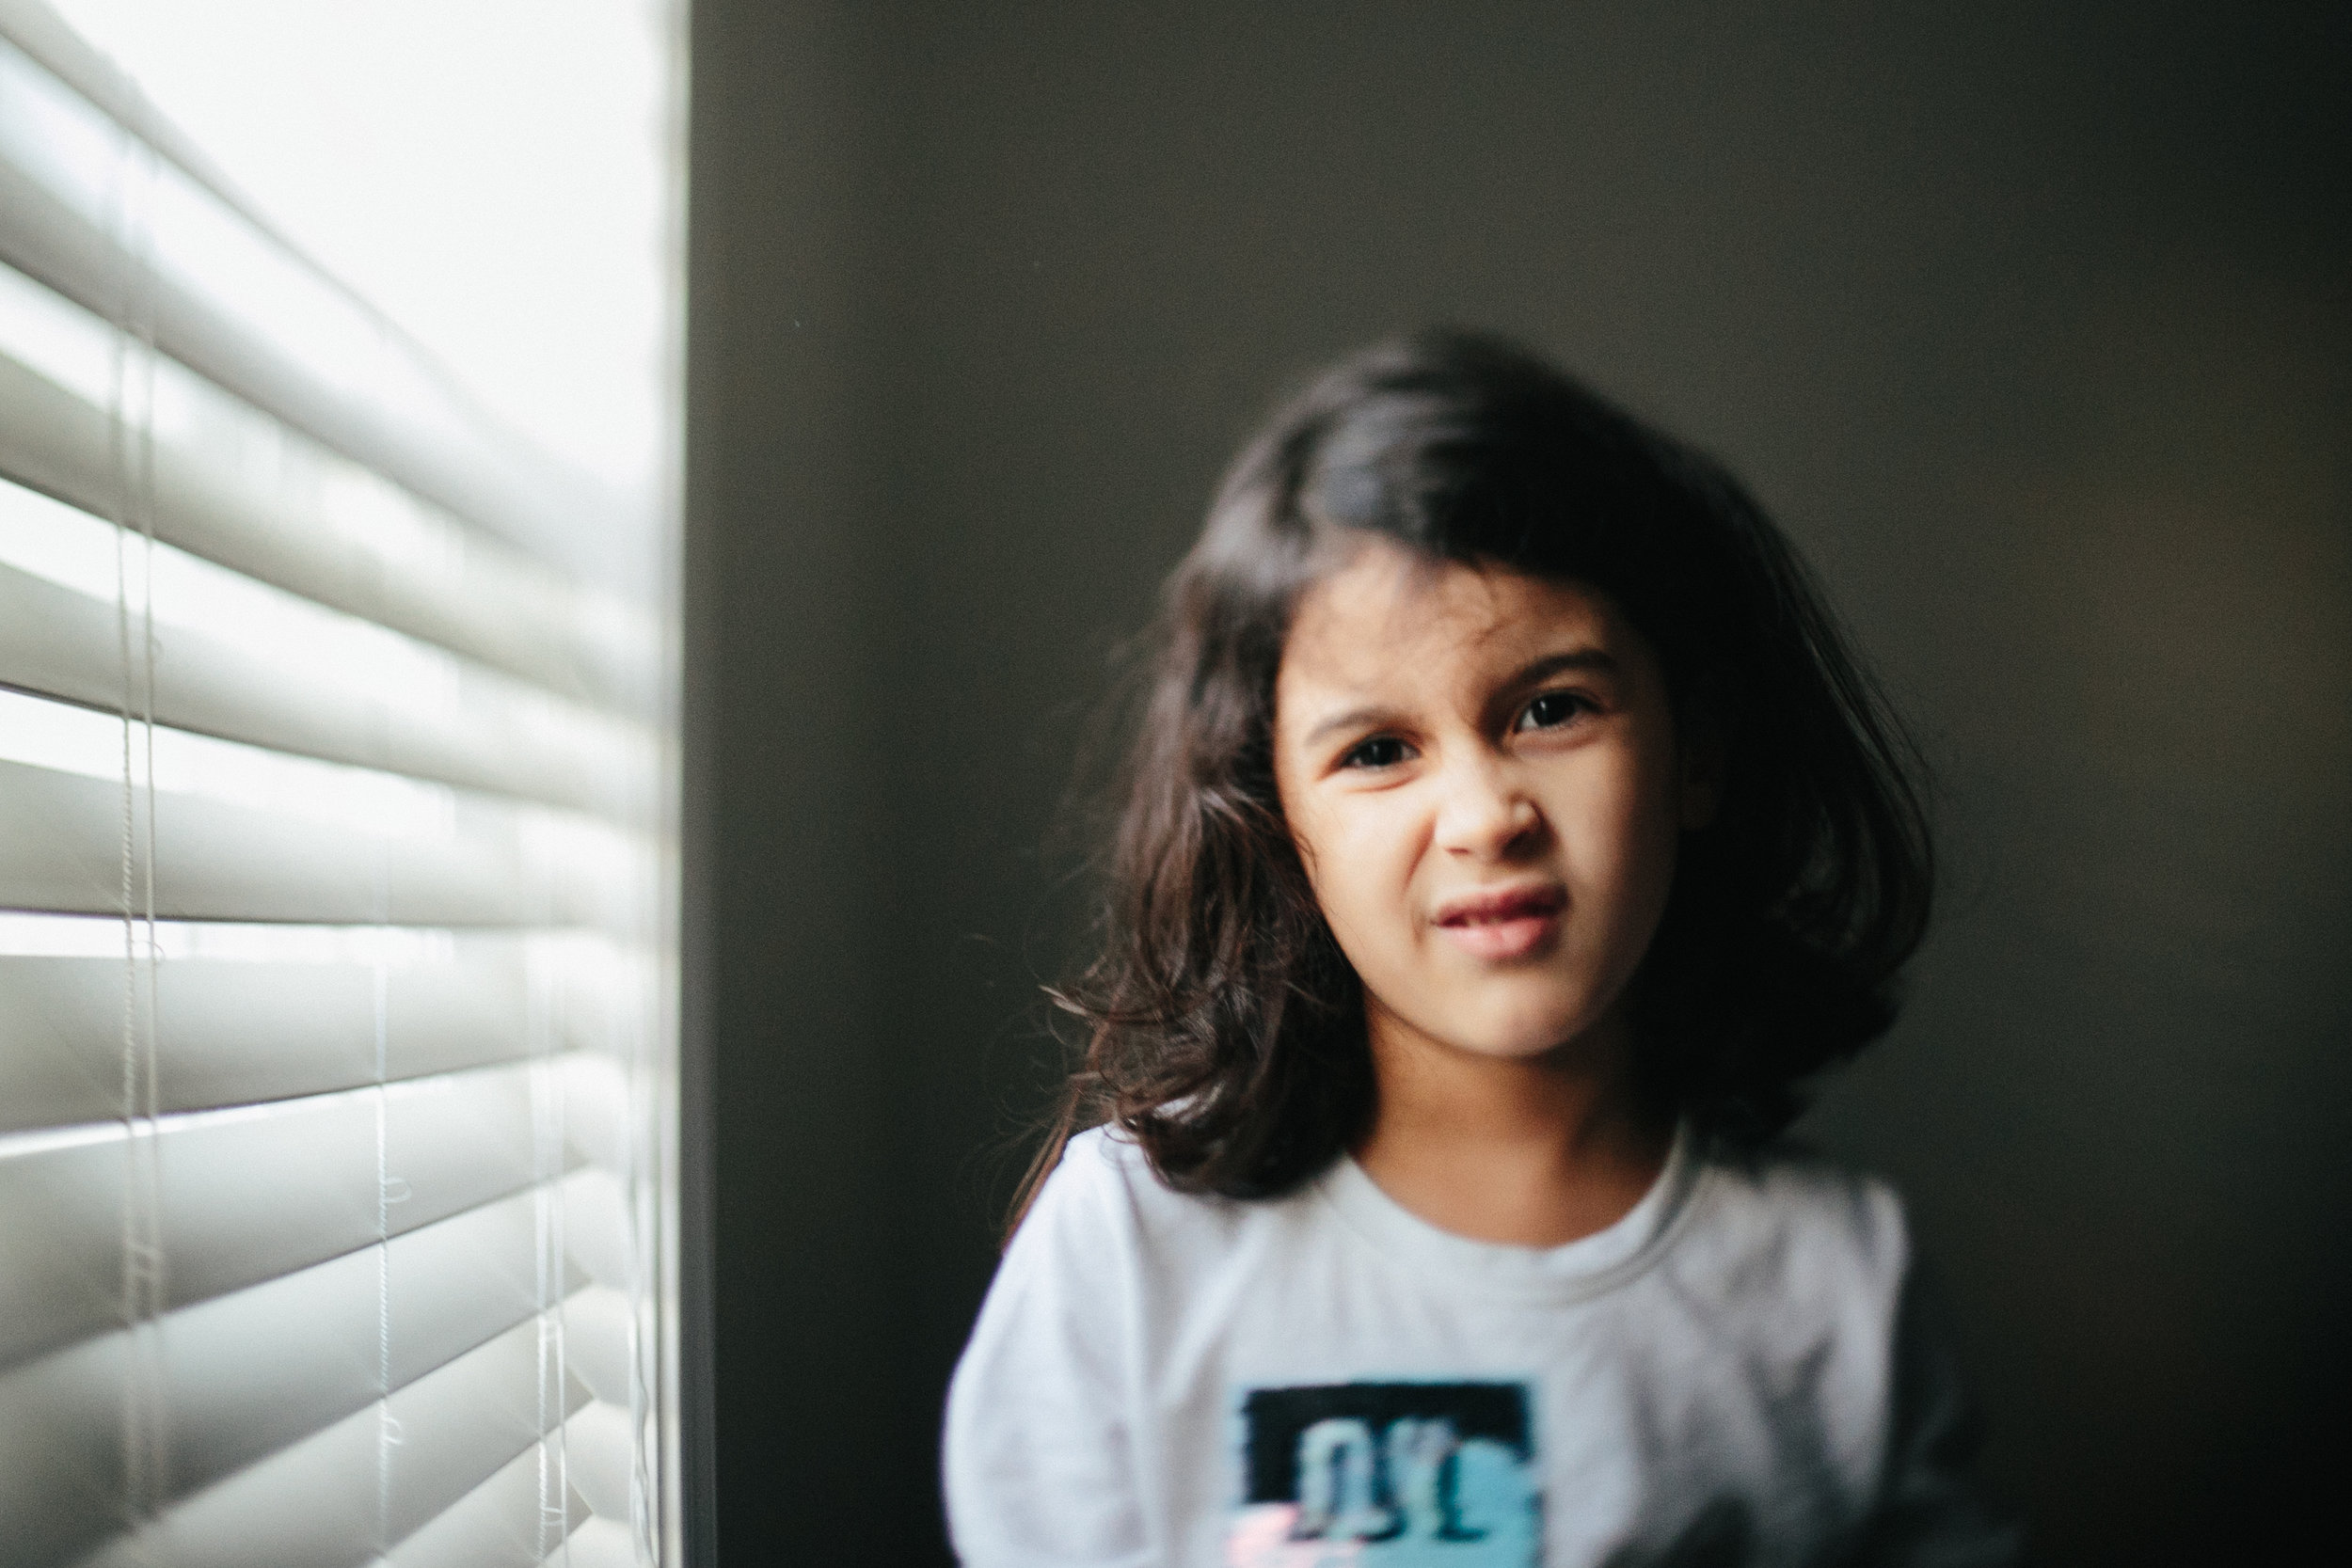 I tried freelensing, and obviously need more practice, but I loved this one.